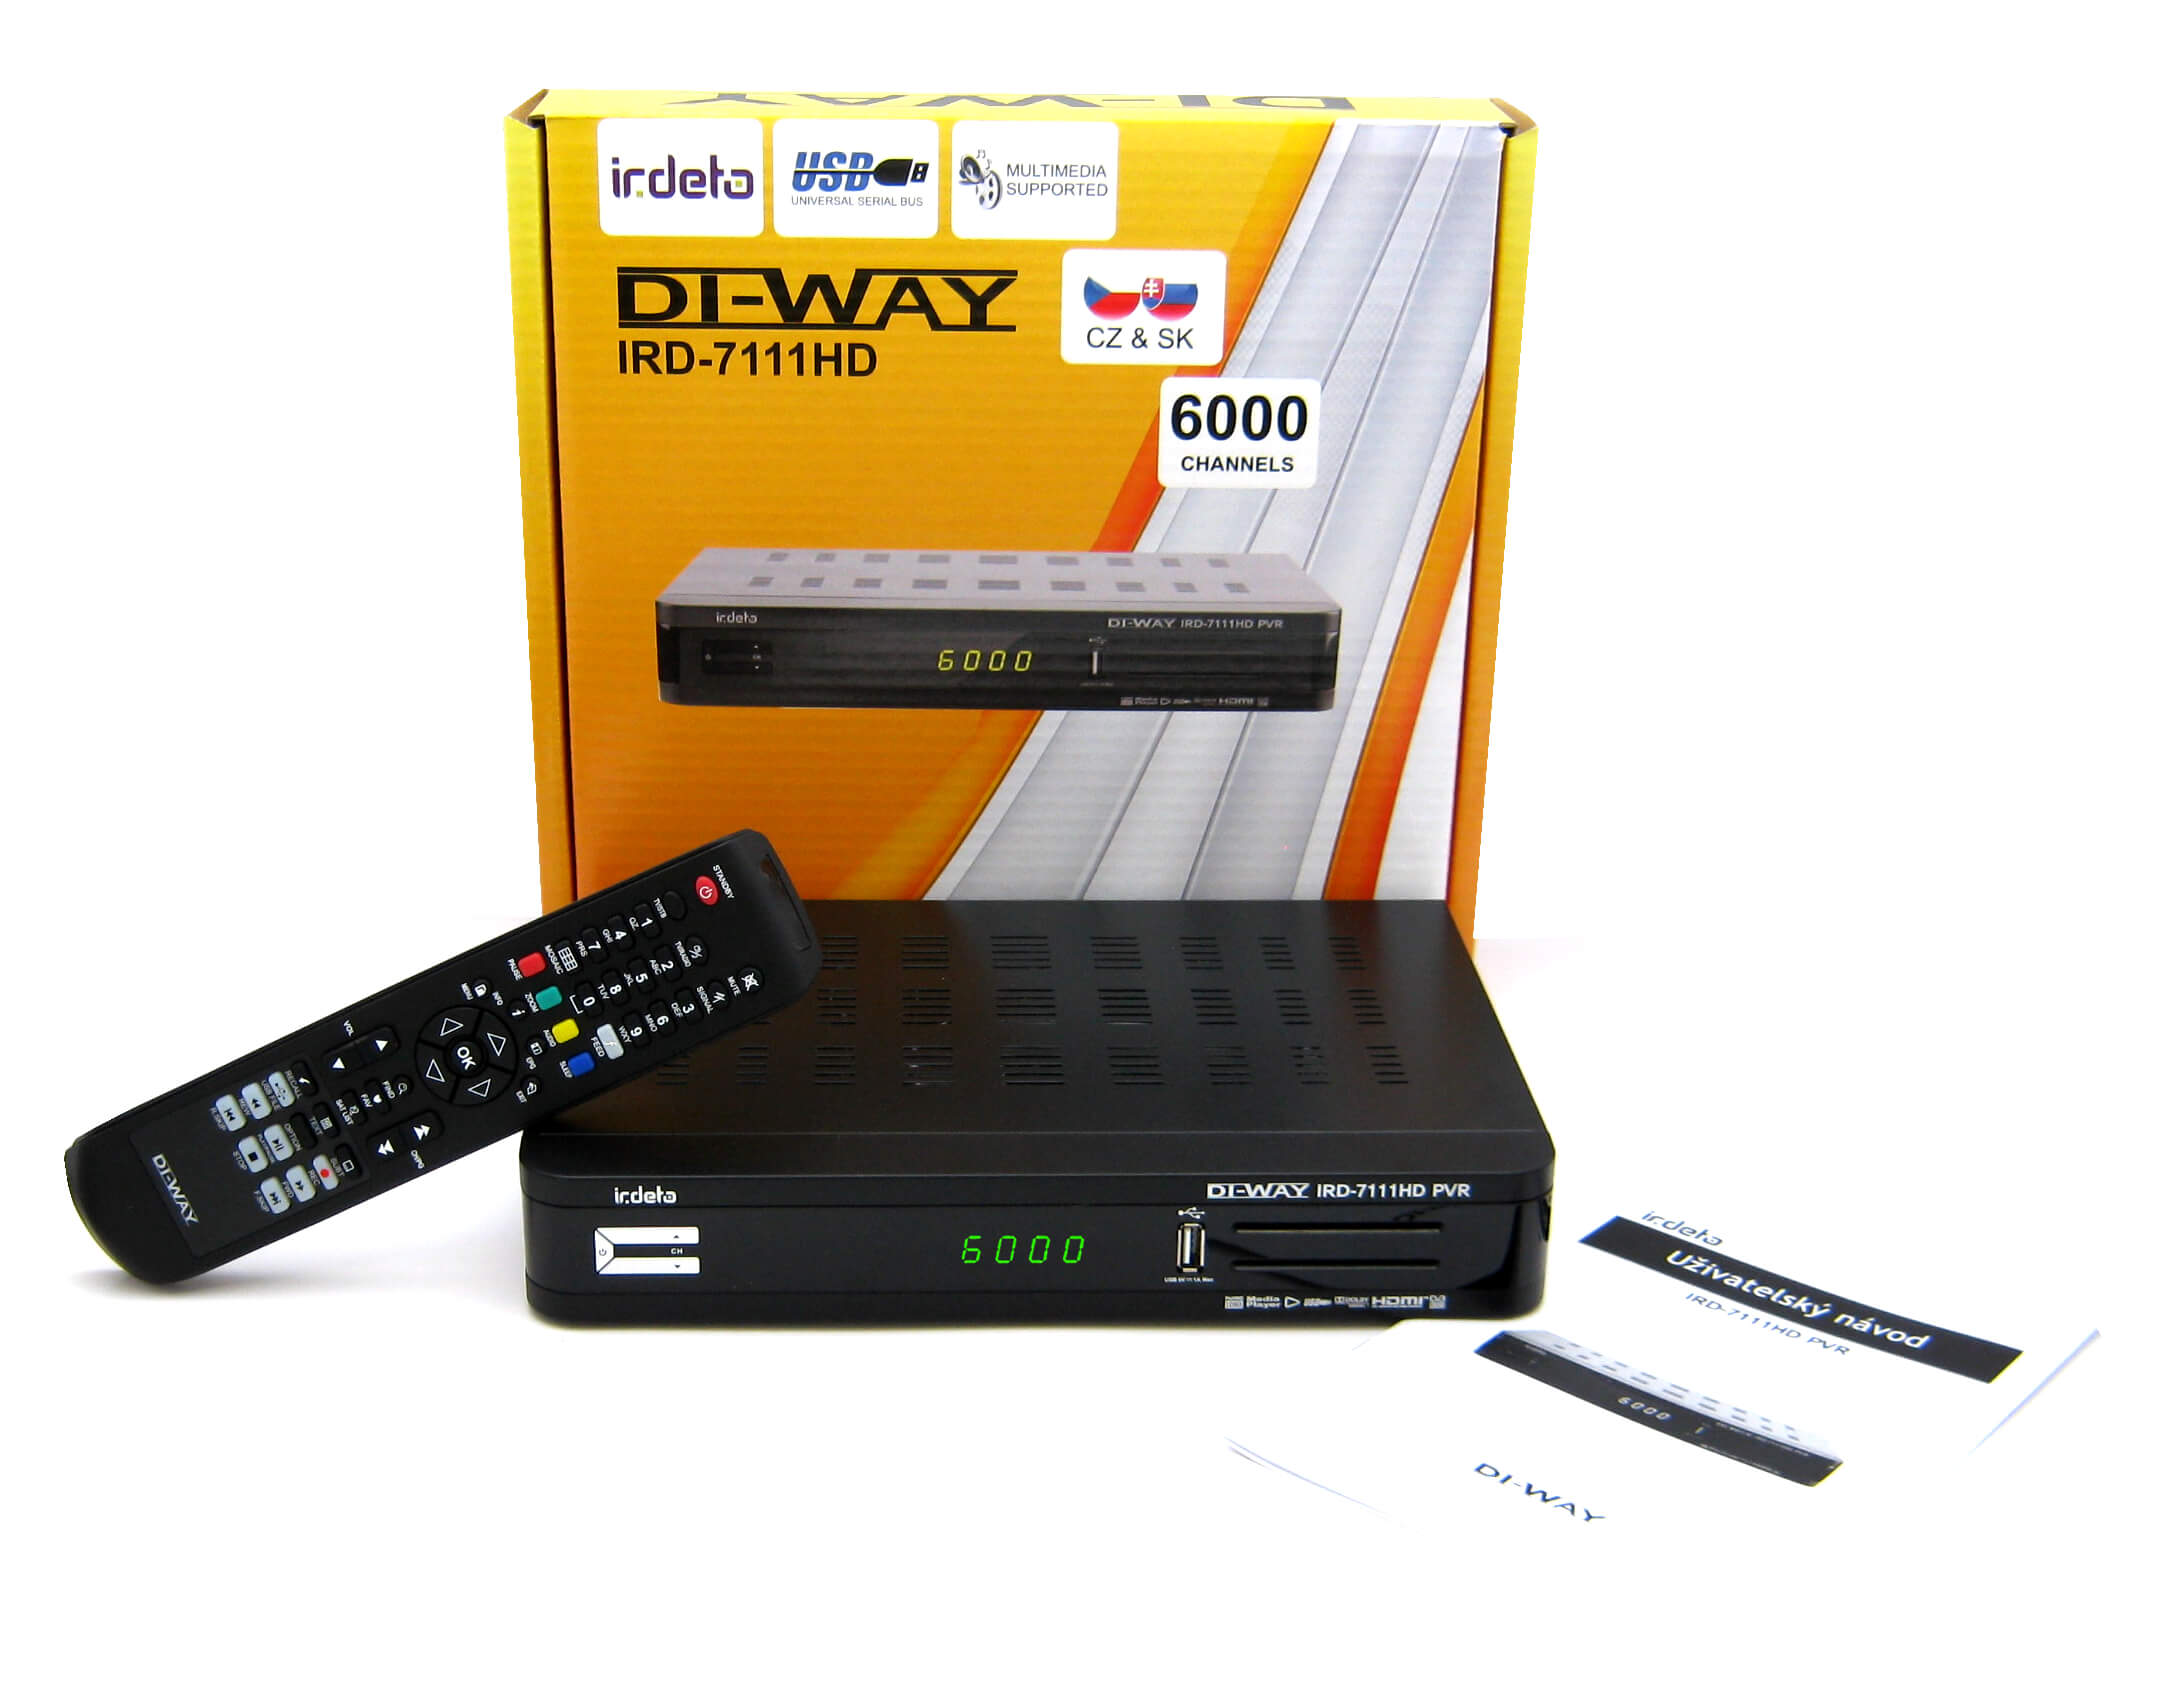 DI-WAY IRD-7111HD PVR IRDETO